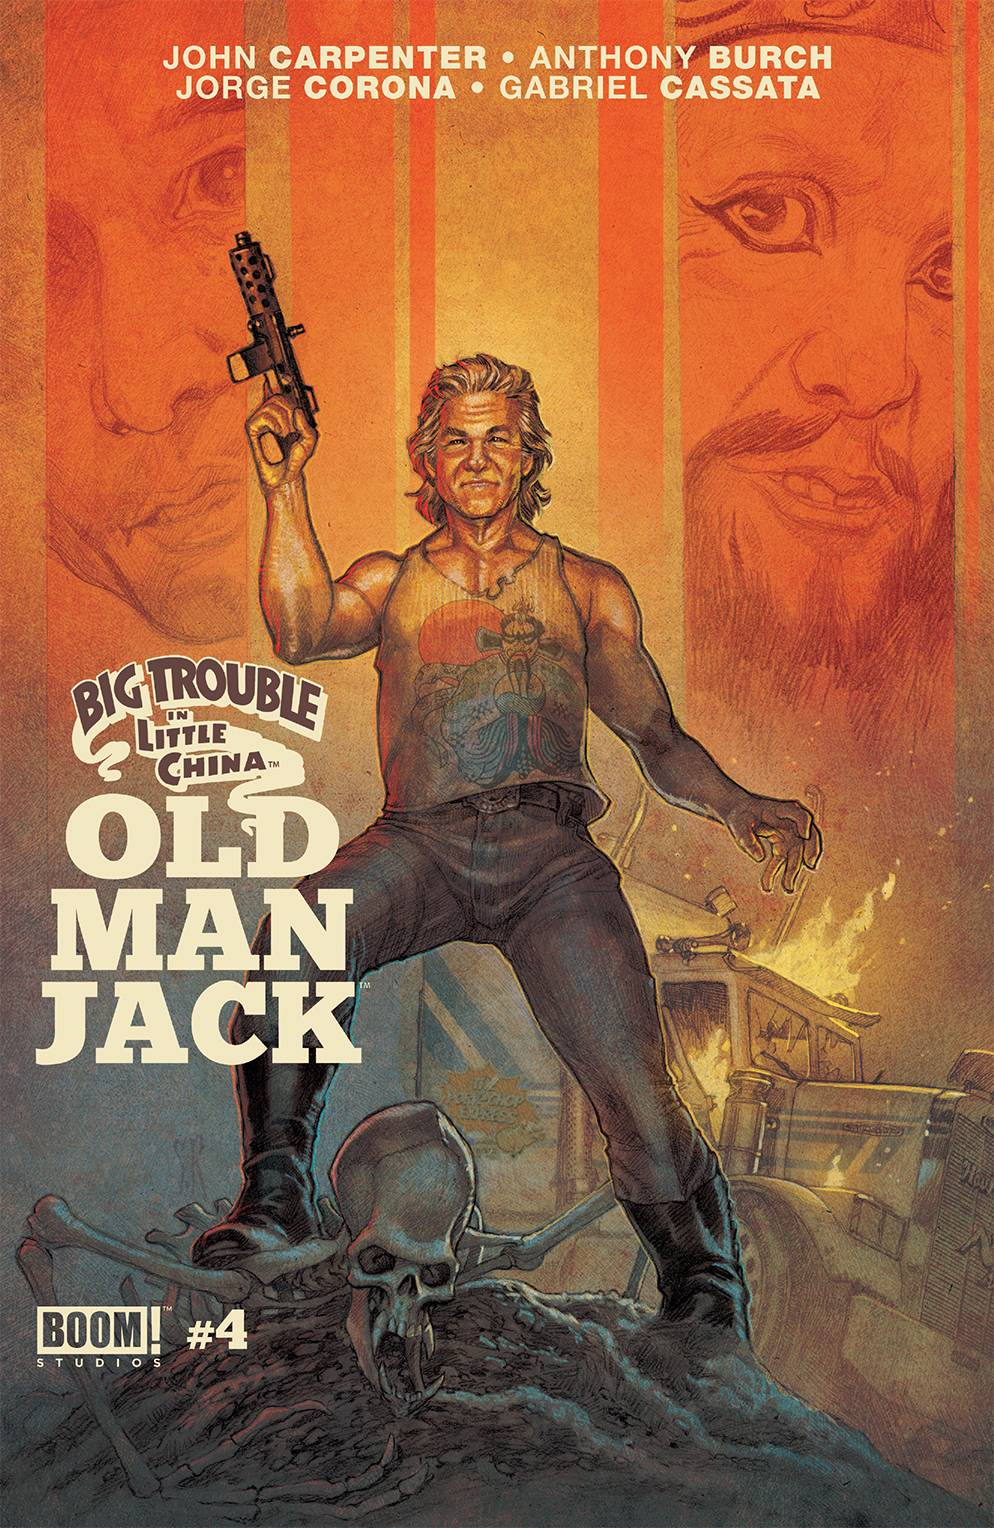 BIG TROUBLE IN LITTLE CHINA OLD MAN JACK 4 MAIN & MIX.jpg